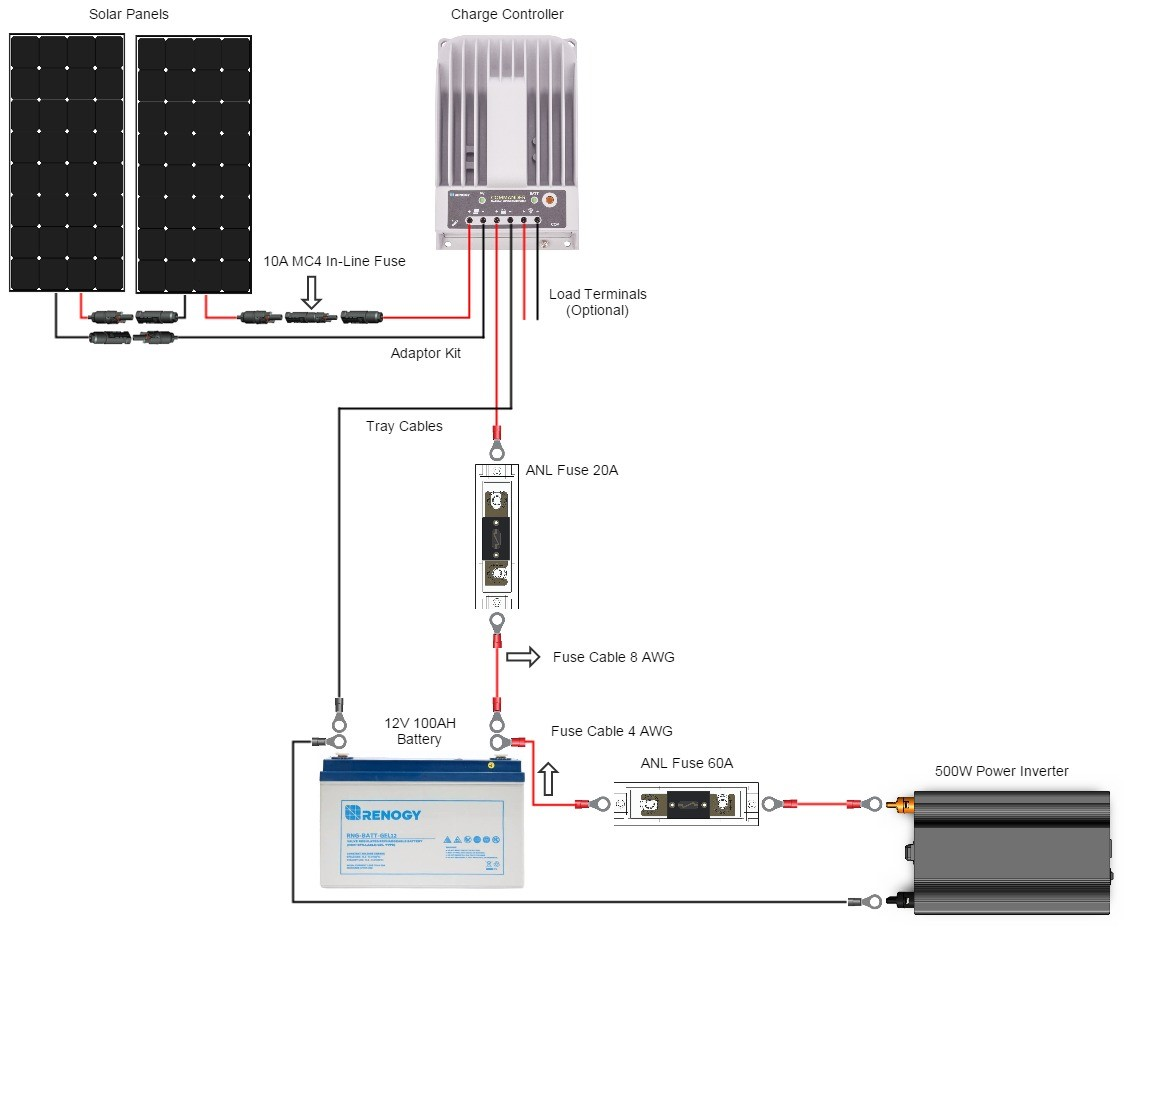 Fine Should I Wire My Panels In Parallel Or In Series Renogy United States Wiring 101 Capemaxxcnl